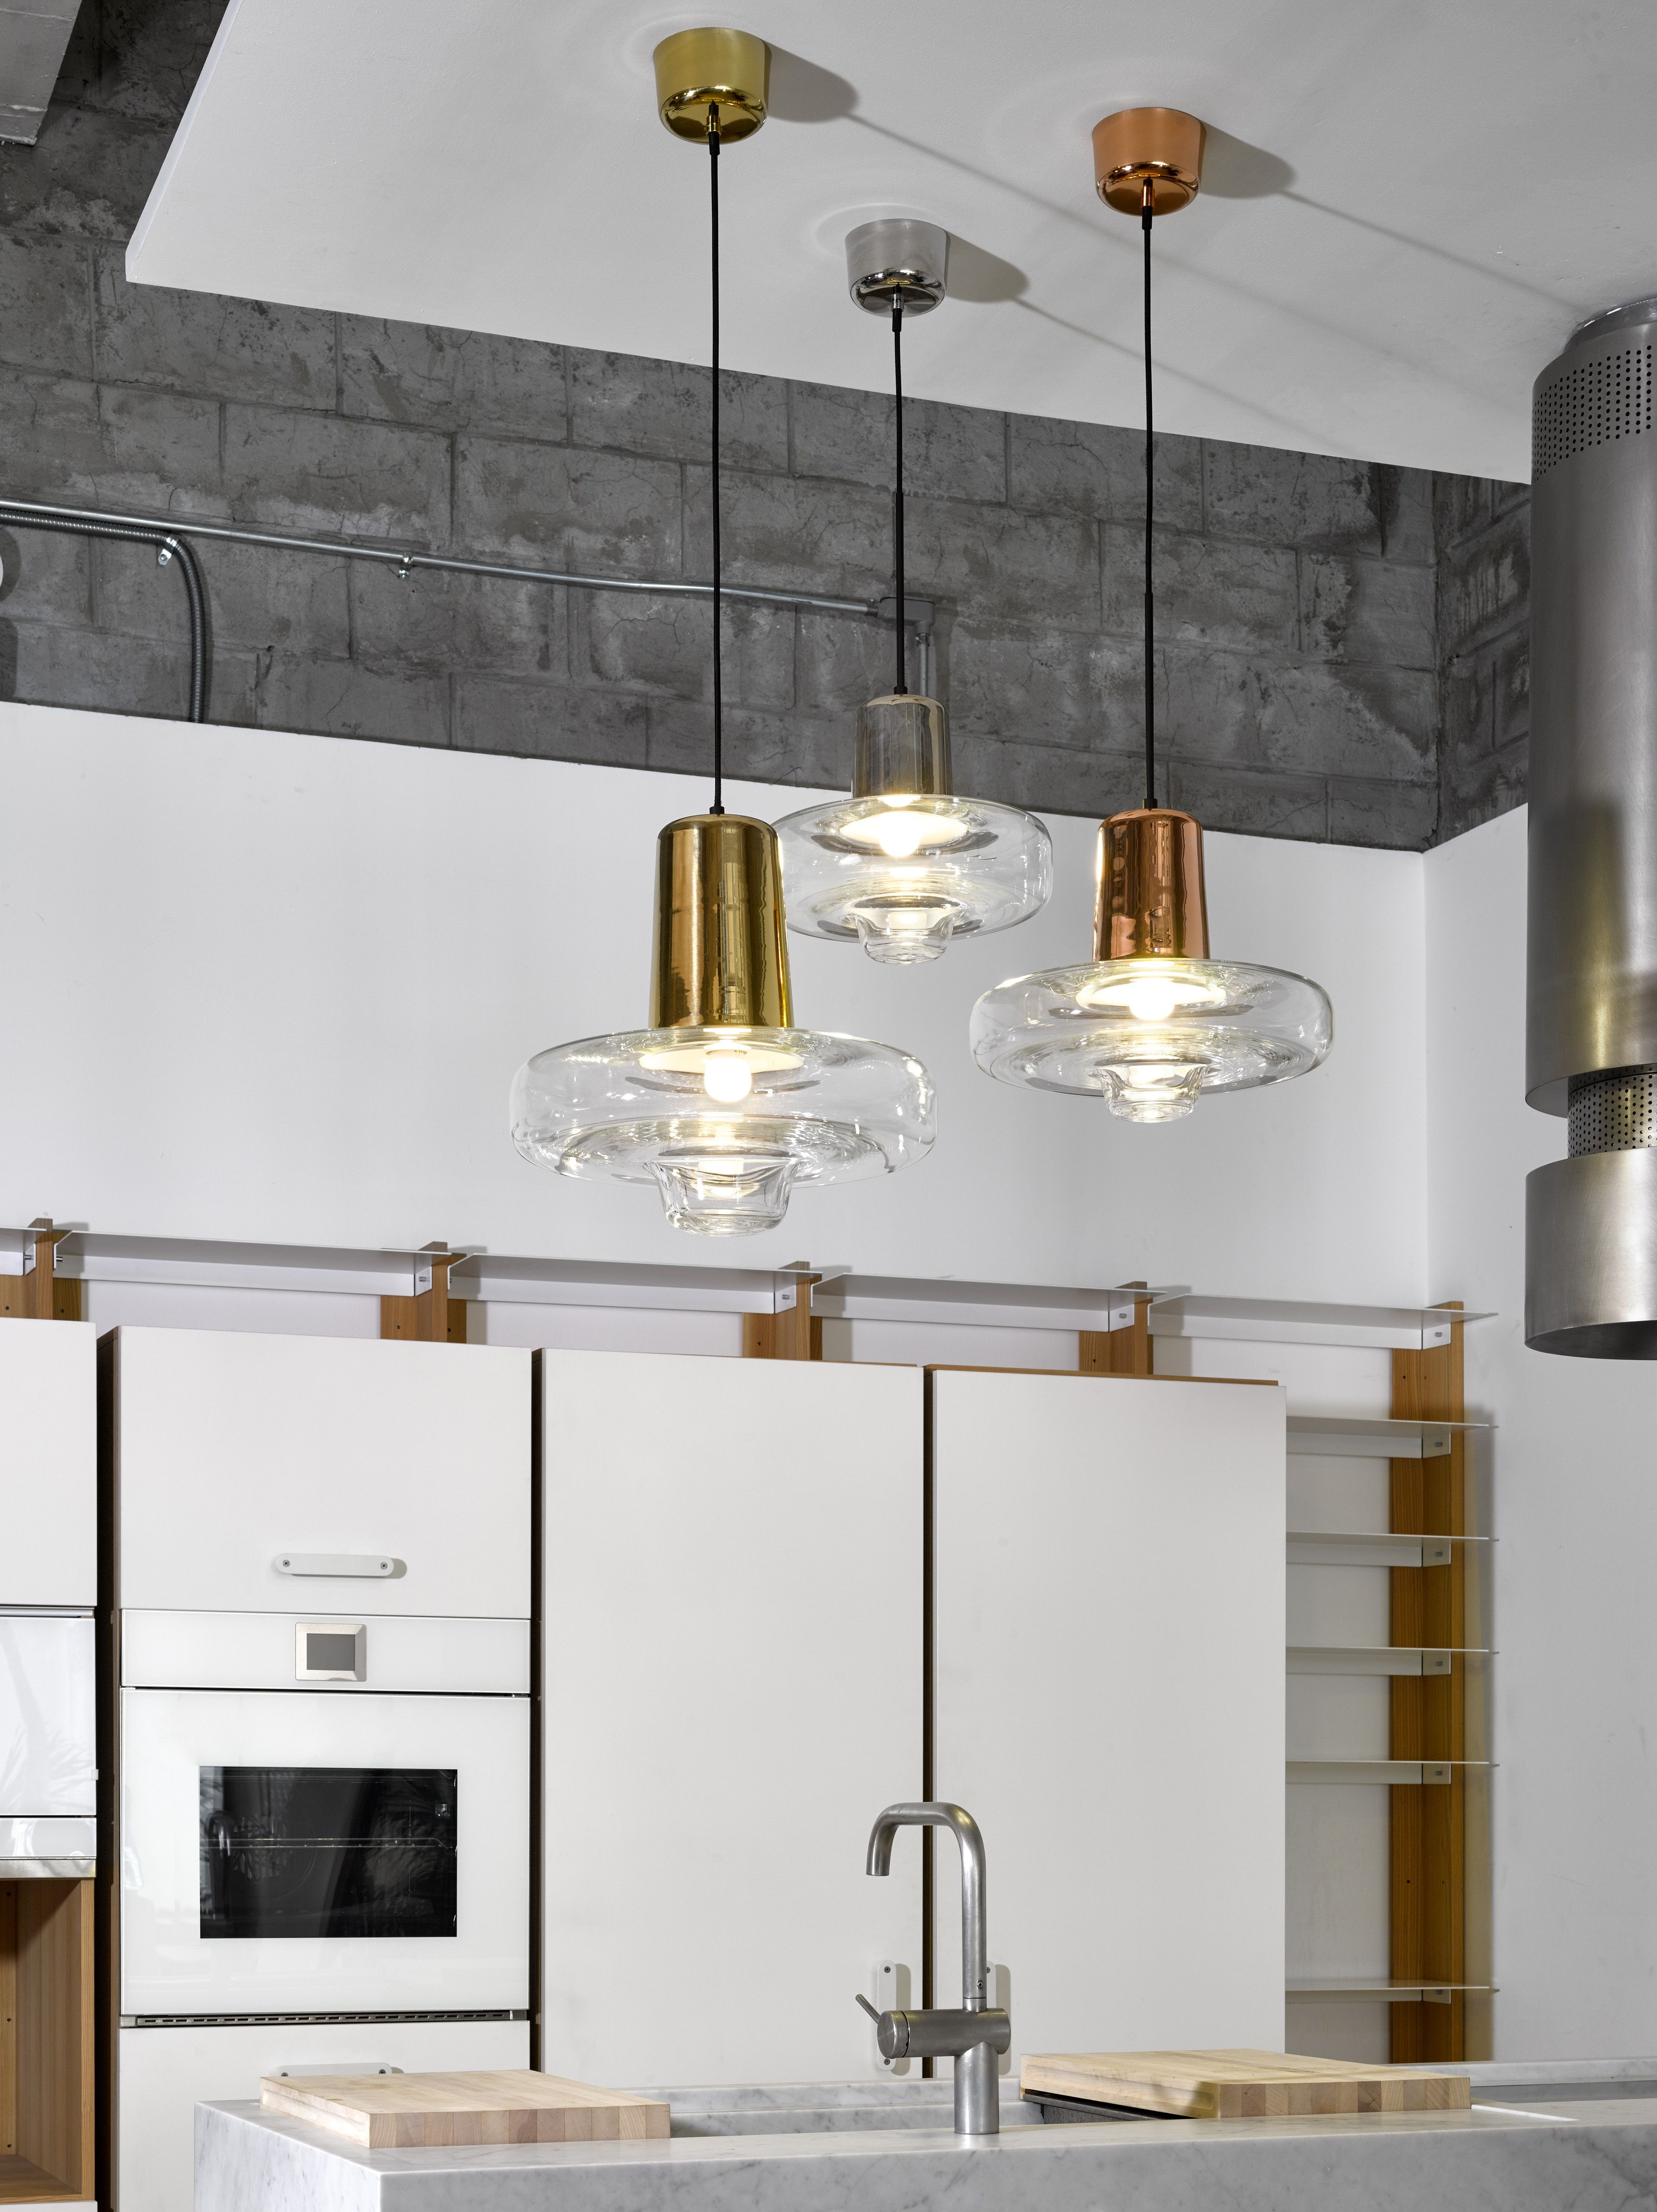 Spin Light Pendants By Lasvit Designed Lucie Koldová At Cwc Interiors Showroom In Manila